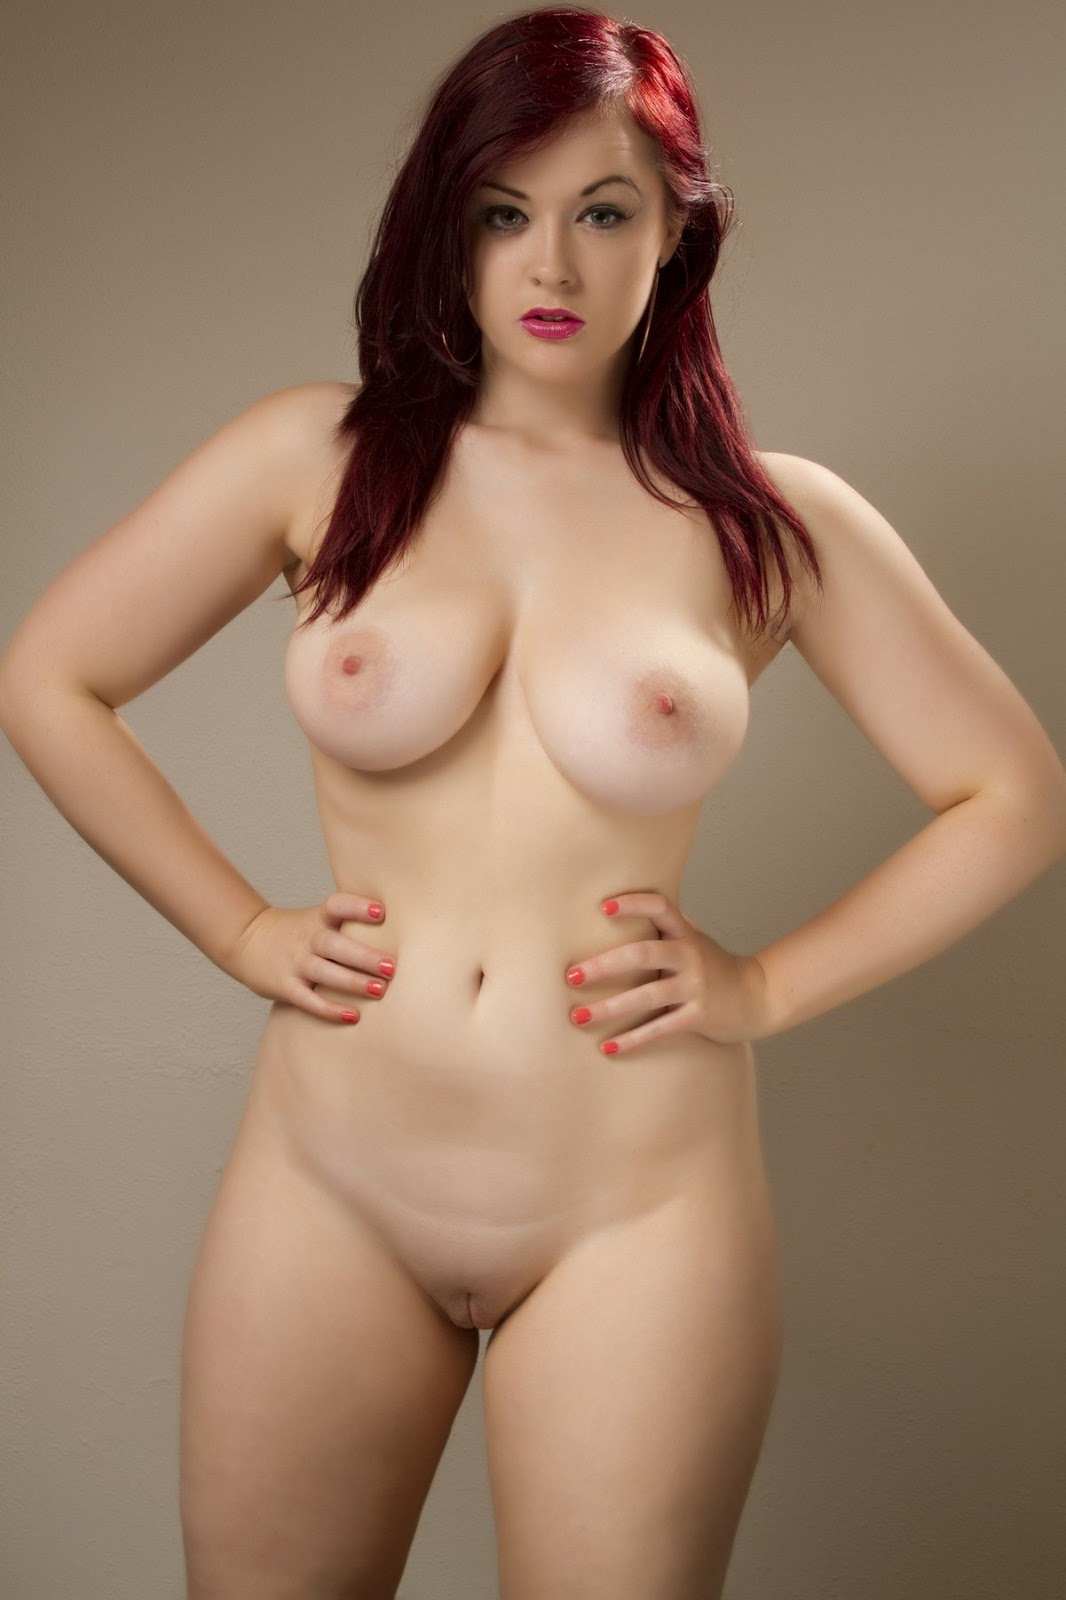 Ruby rogue nude